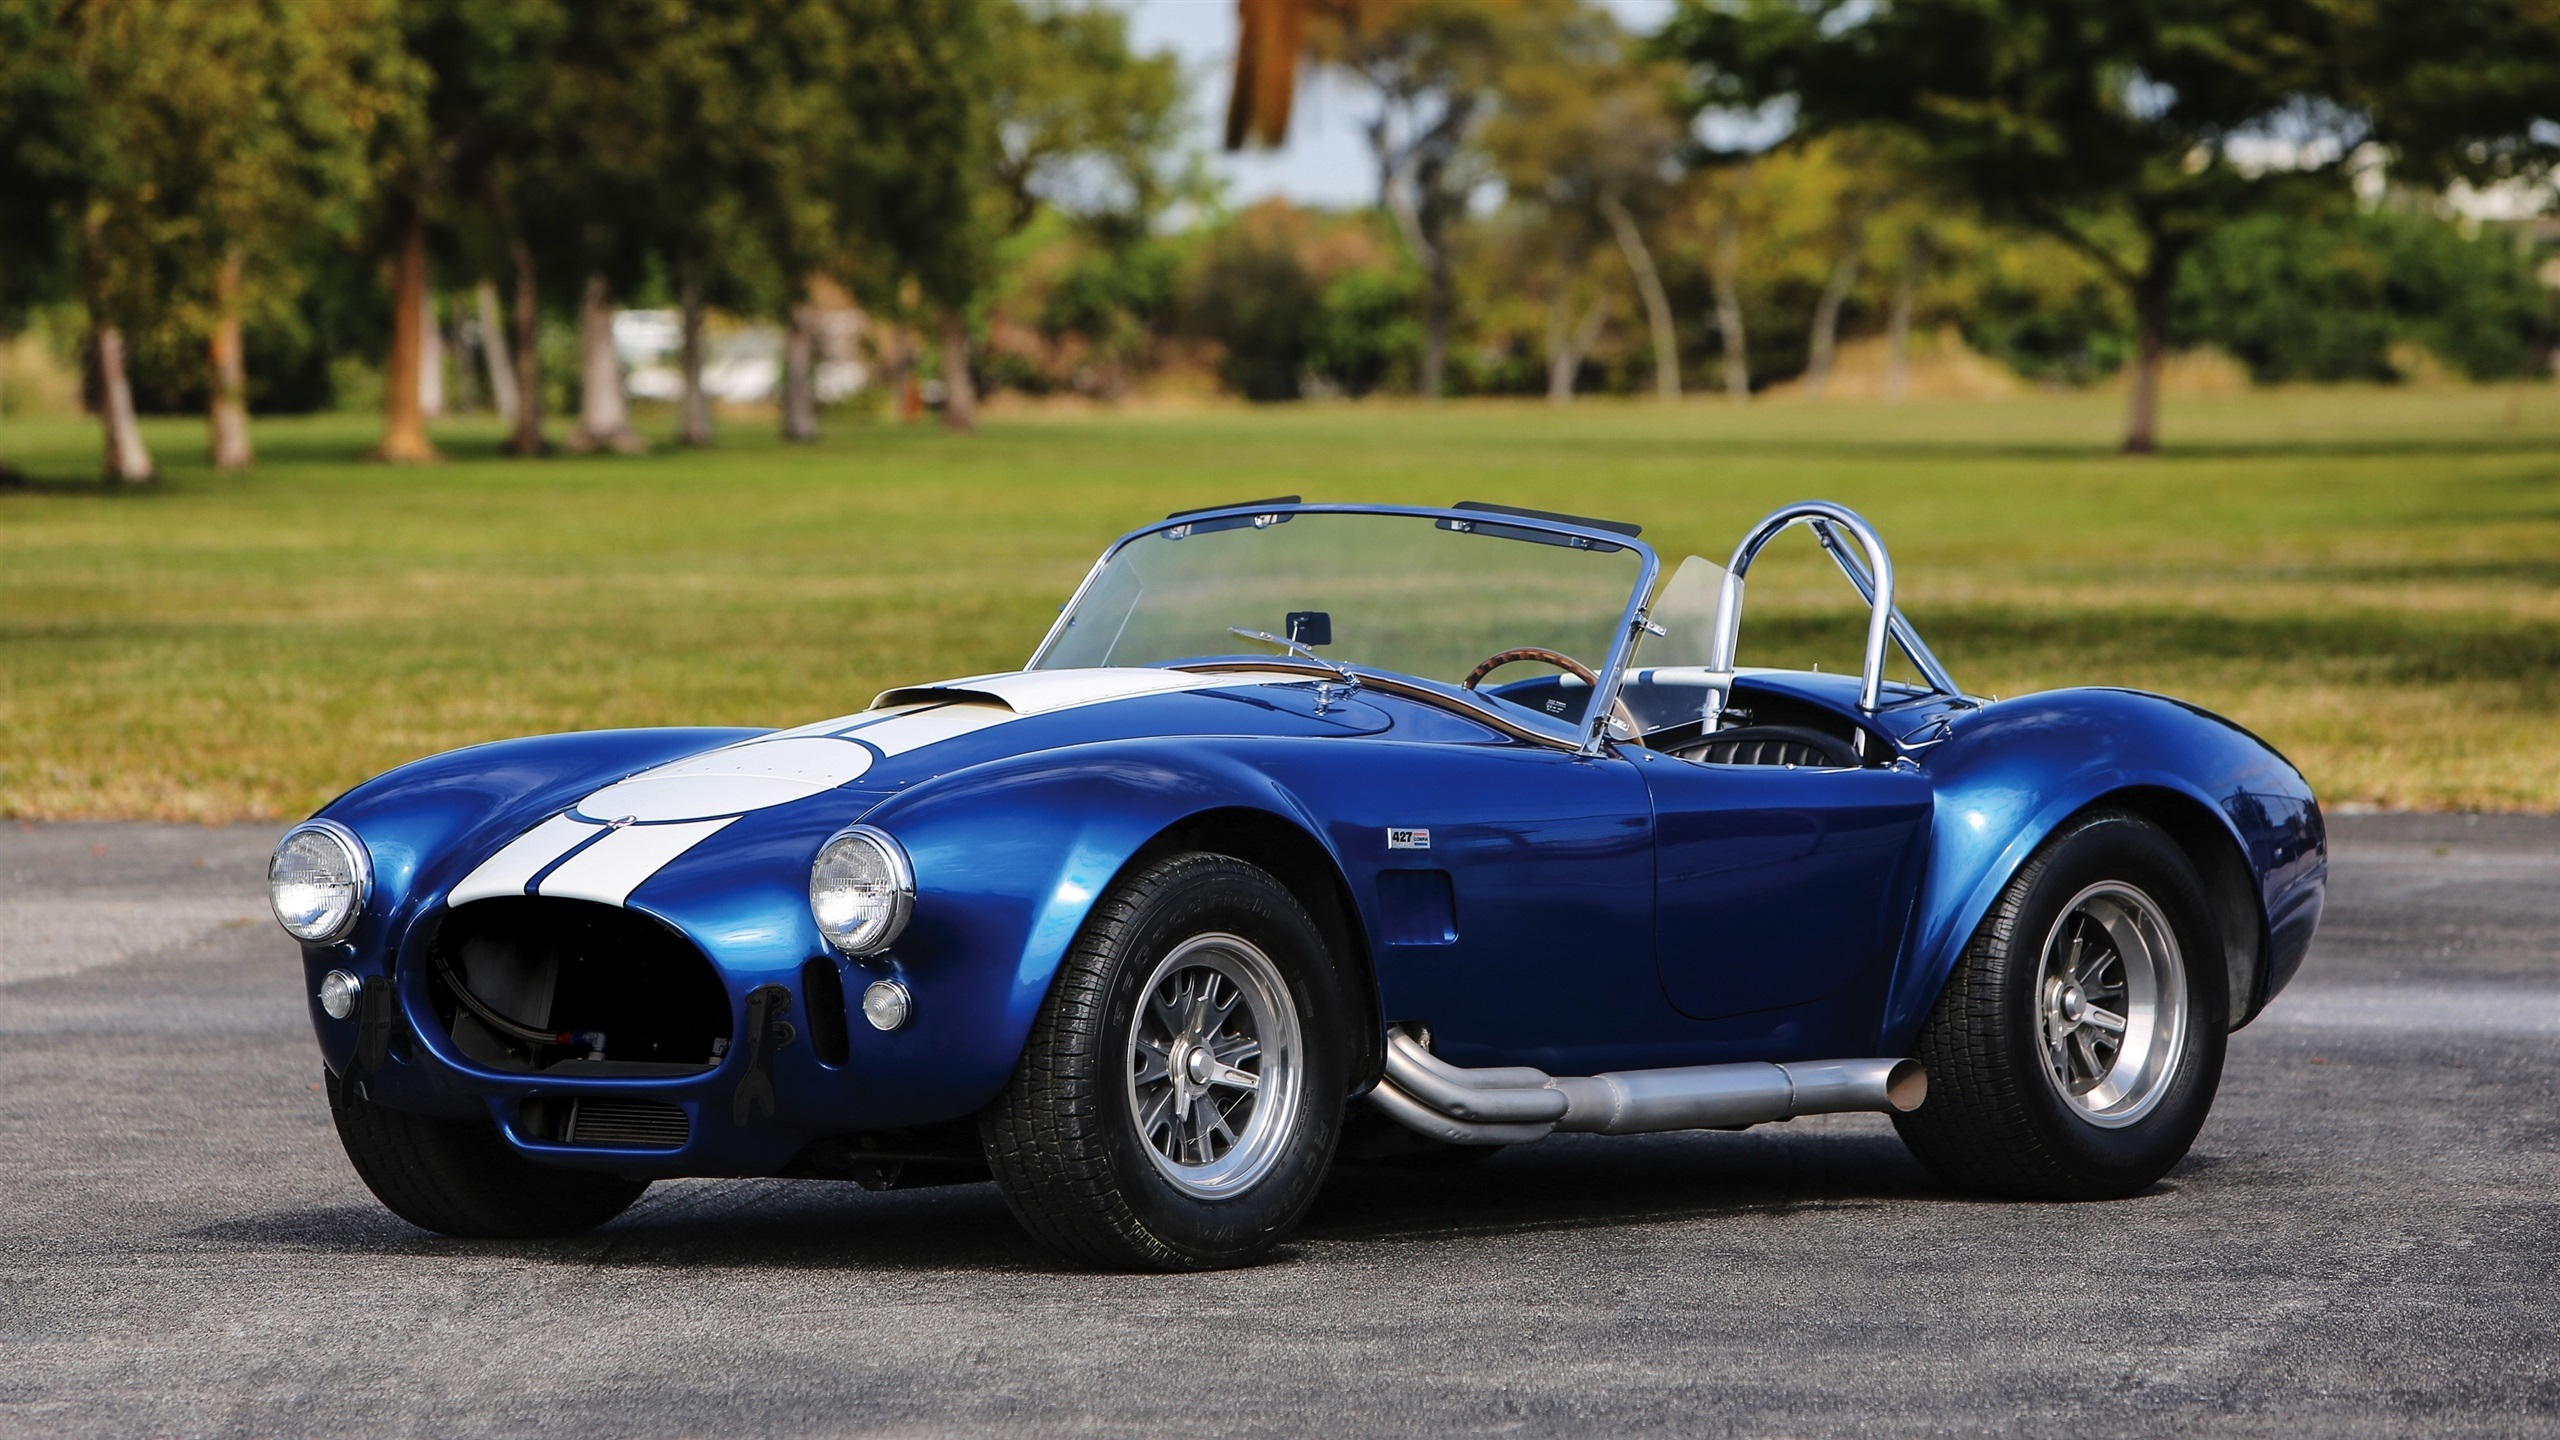 Wallpaper 1967 Shelby Cobra 427 Sc Ford Blue Car 2560x1440 Qhd Picture Image